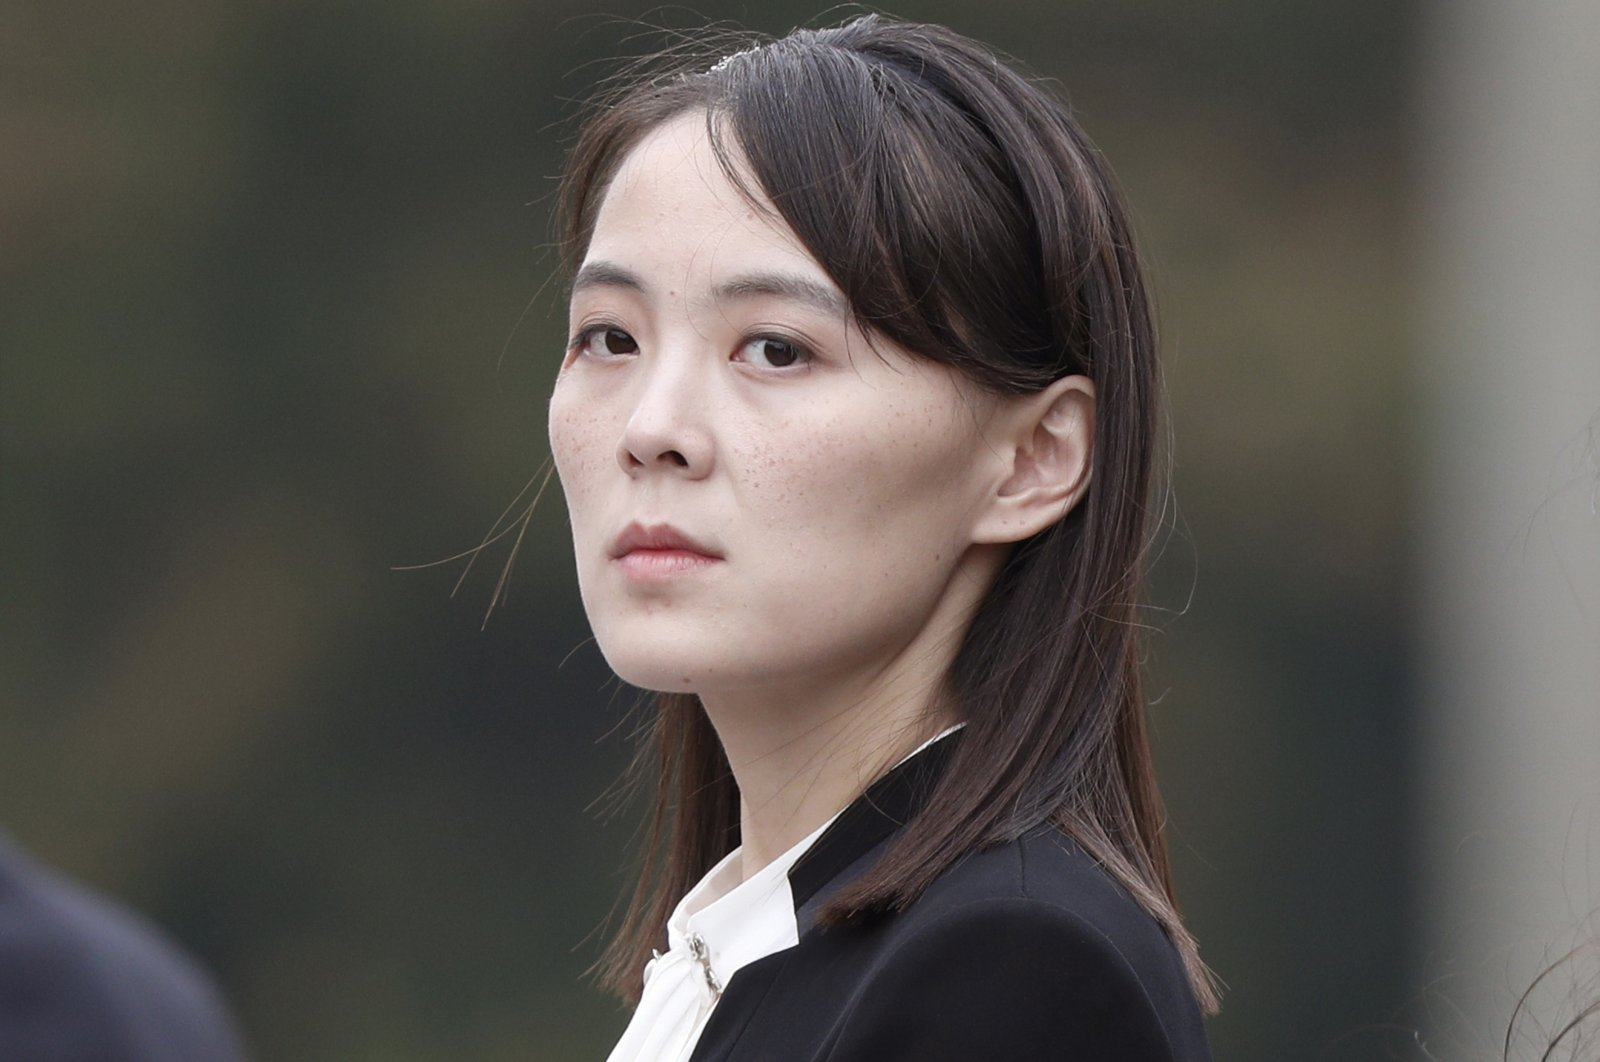 Kim Yo Jong, sister of North Korea's leader Kim Jong Un attends a wreath-laying ceremony at Ho Chi Minh Mausoleum in Hanoi, Vietnam, March 2, 2019. (AP Photo)